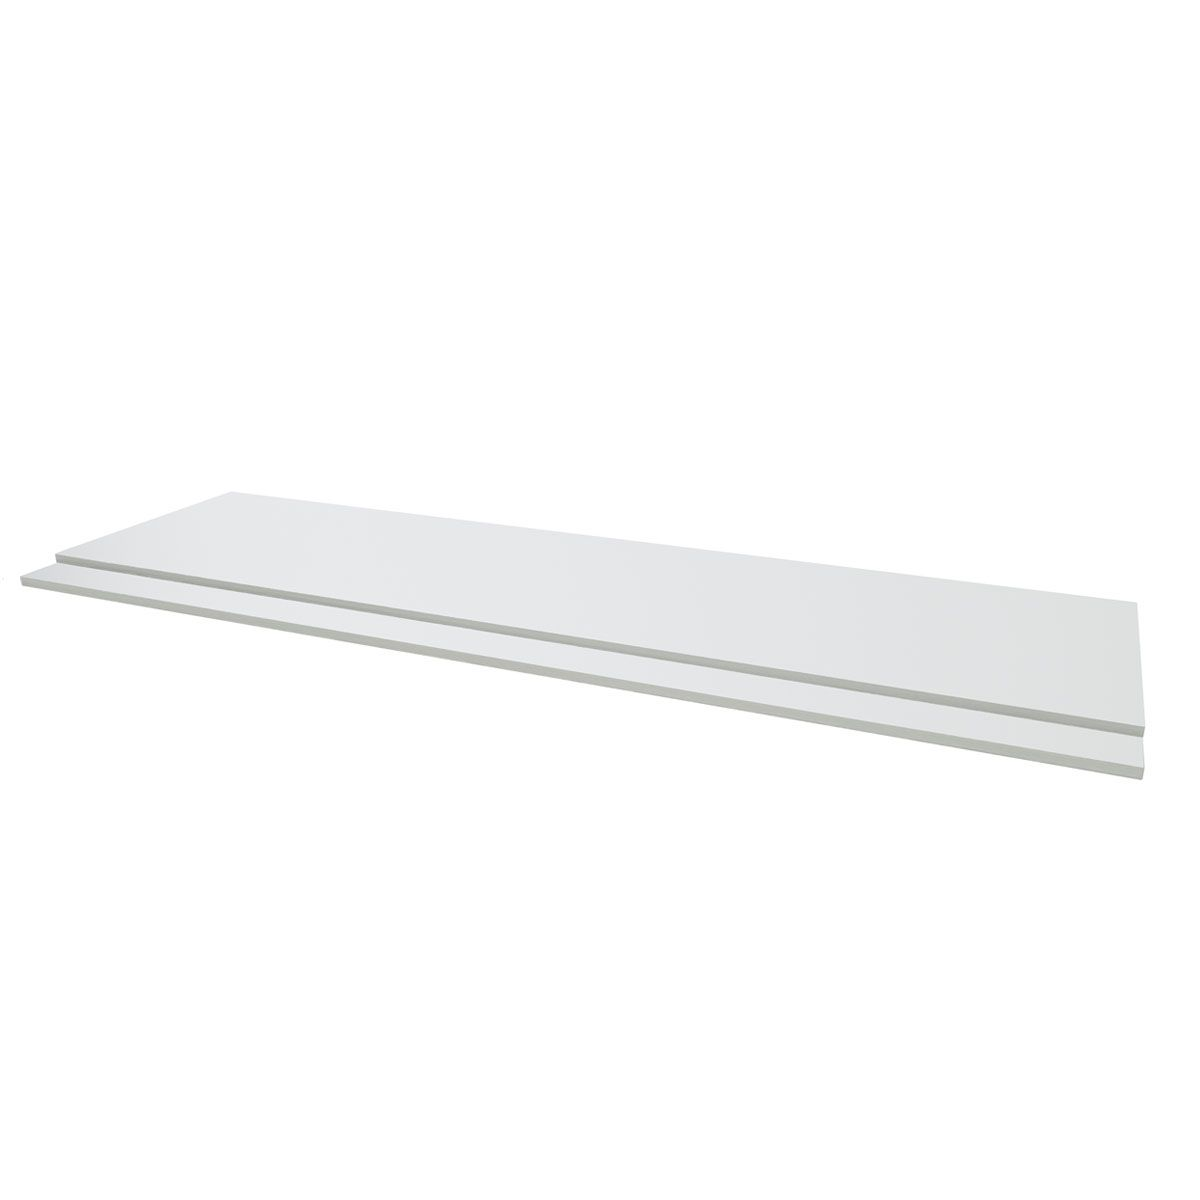 Kartell Purity White 2 Piece Front Bath Panel 1800mm